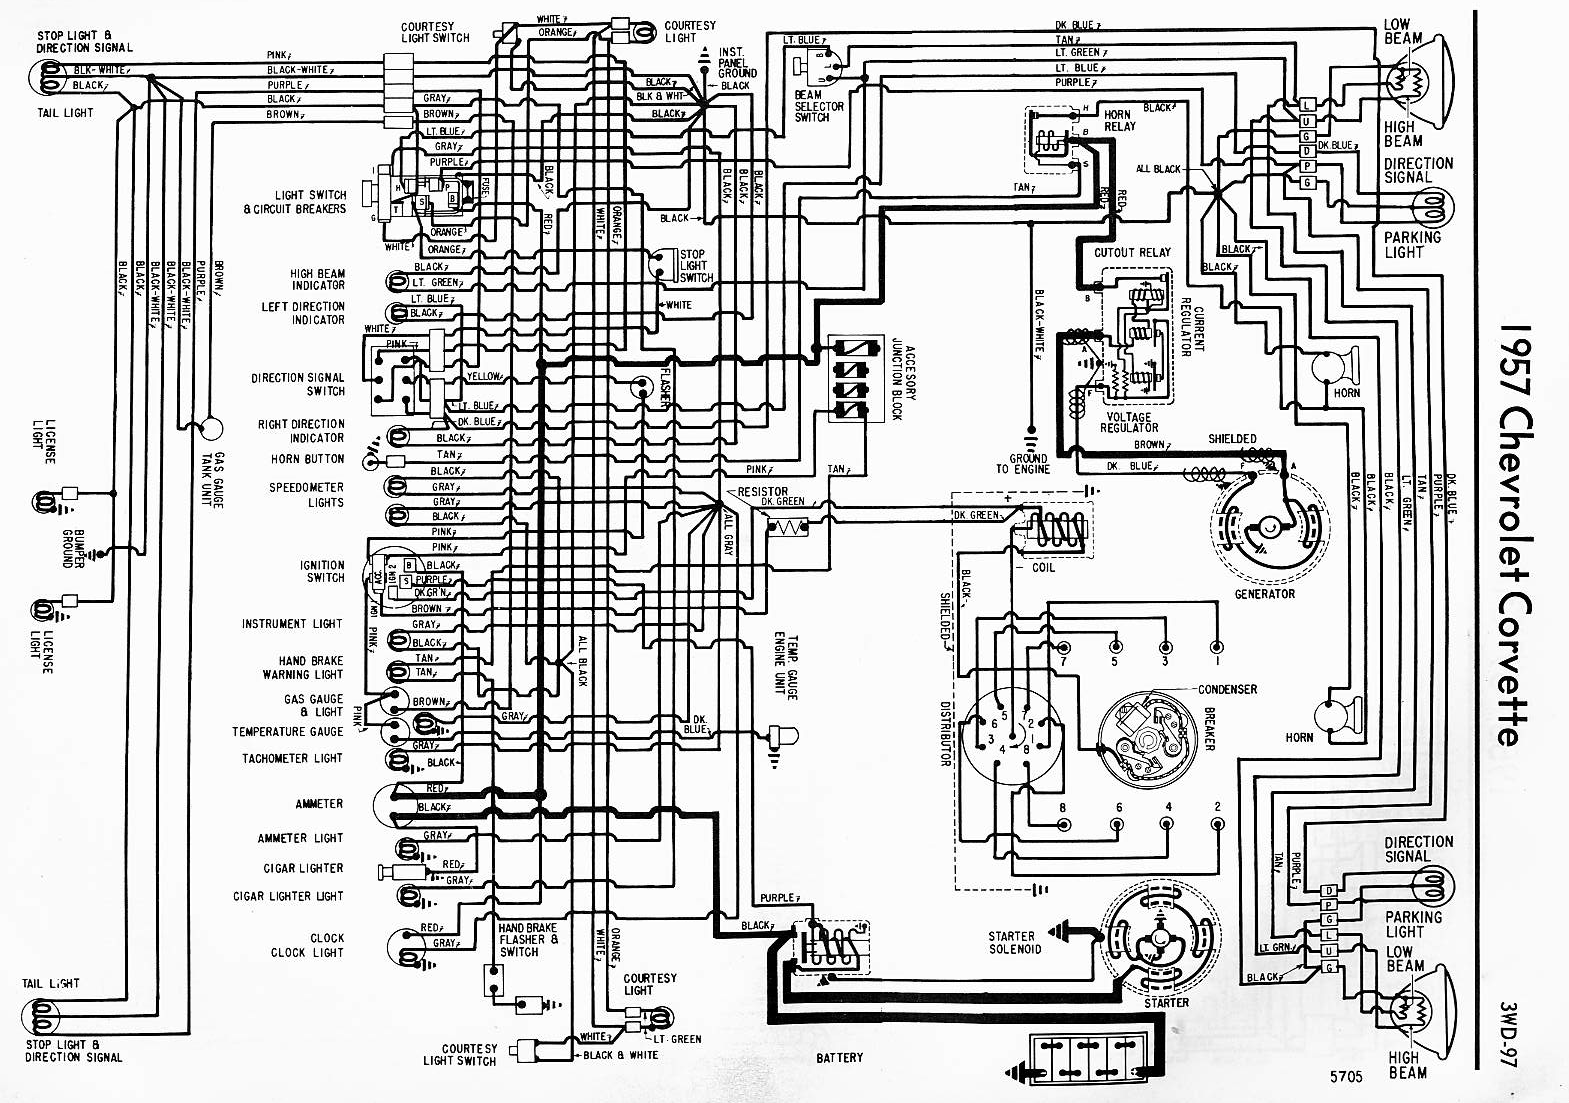 57 corvettte tracer schematic best one 1957 corvette wiring diagram willcox corvette, inc 1990 corvette wiring diagram at gsmx.co